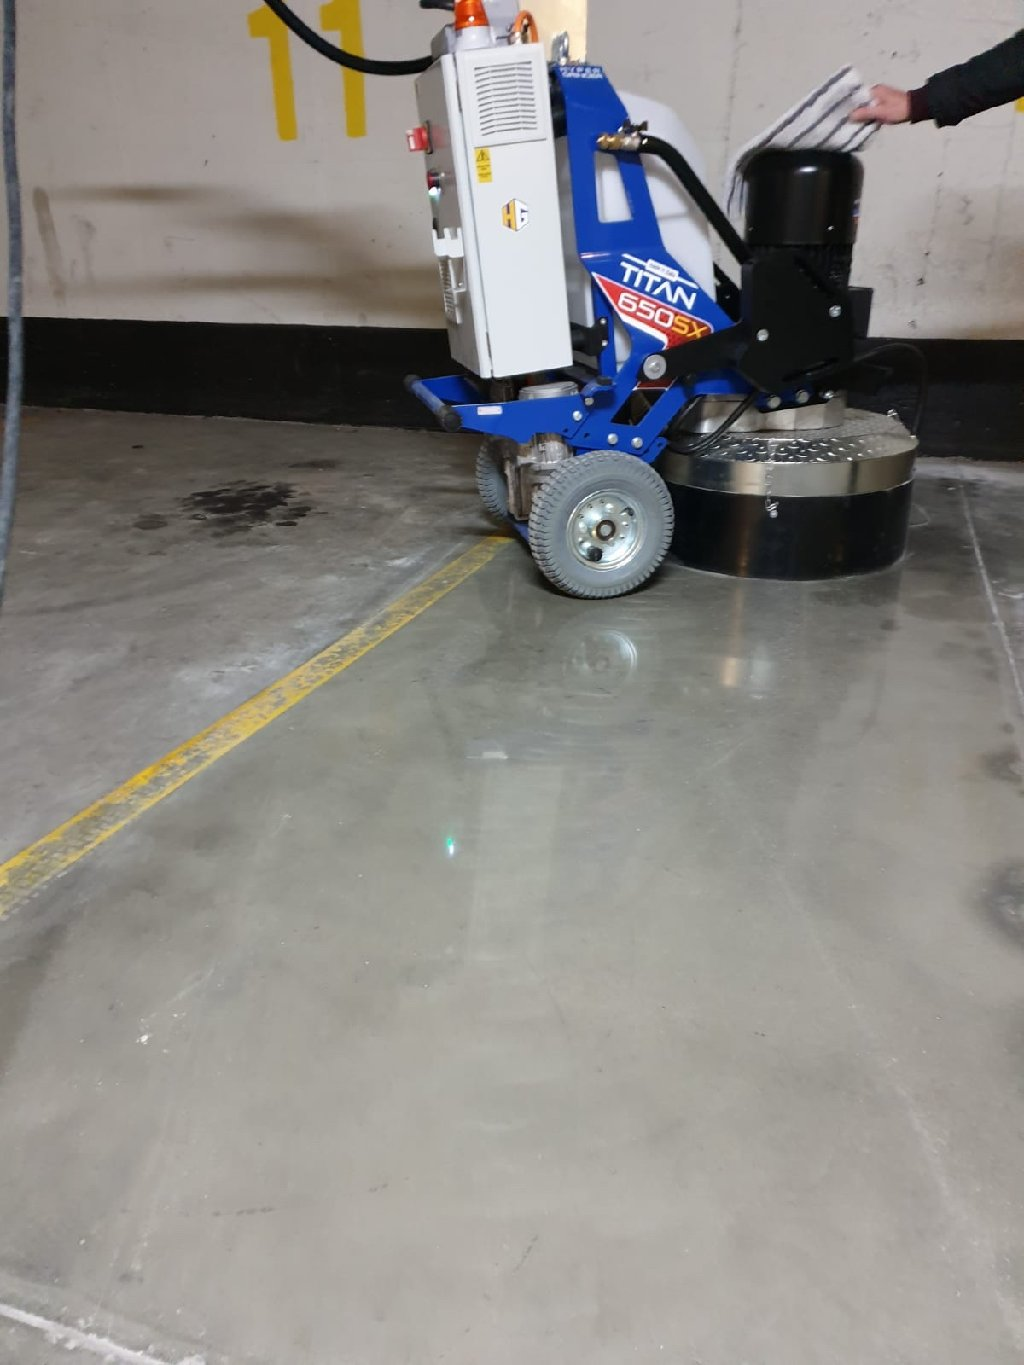 What Are Concrete Densifiers And Why Are They Significant?